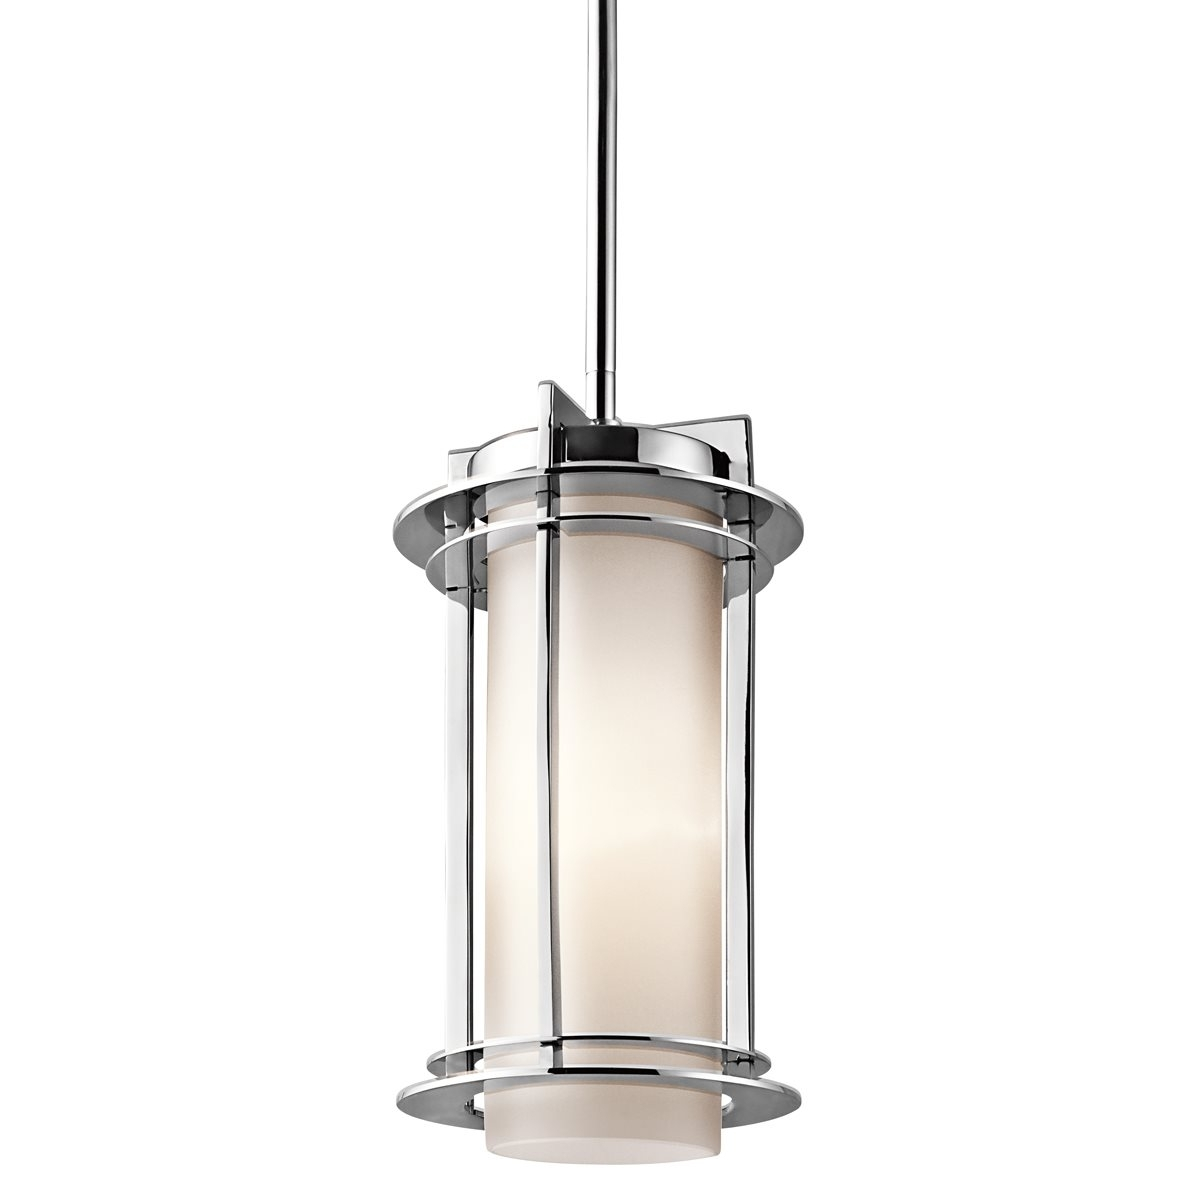 Outdoor Hanging Lights Masters Throughout Most Current Modern Outdoor Pendant Lighting – Outdoor Designs (View 10 of 20)